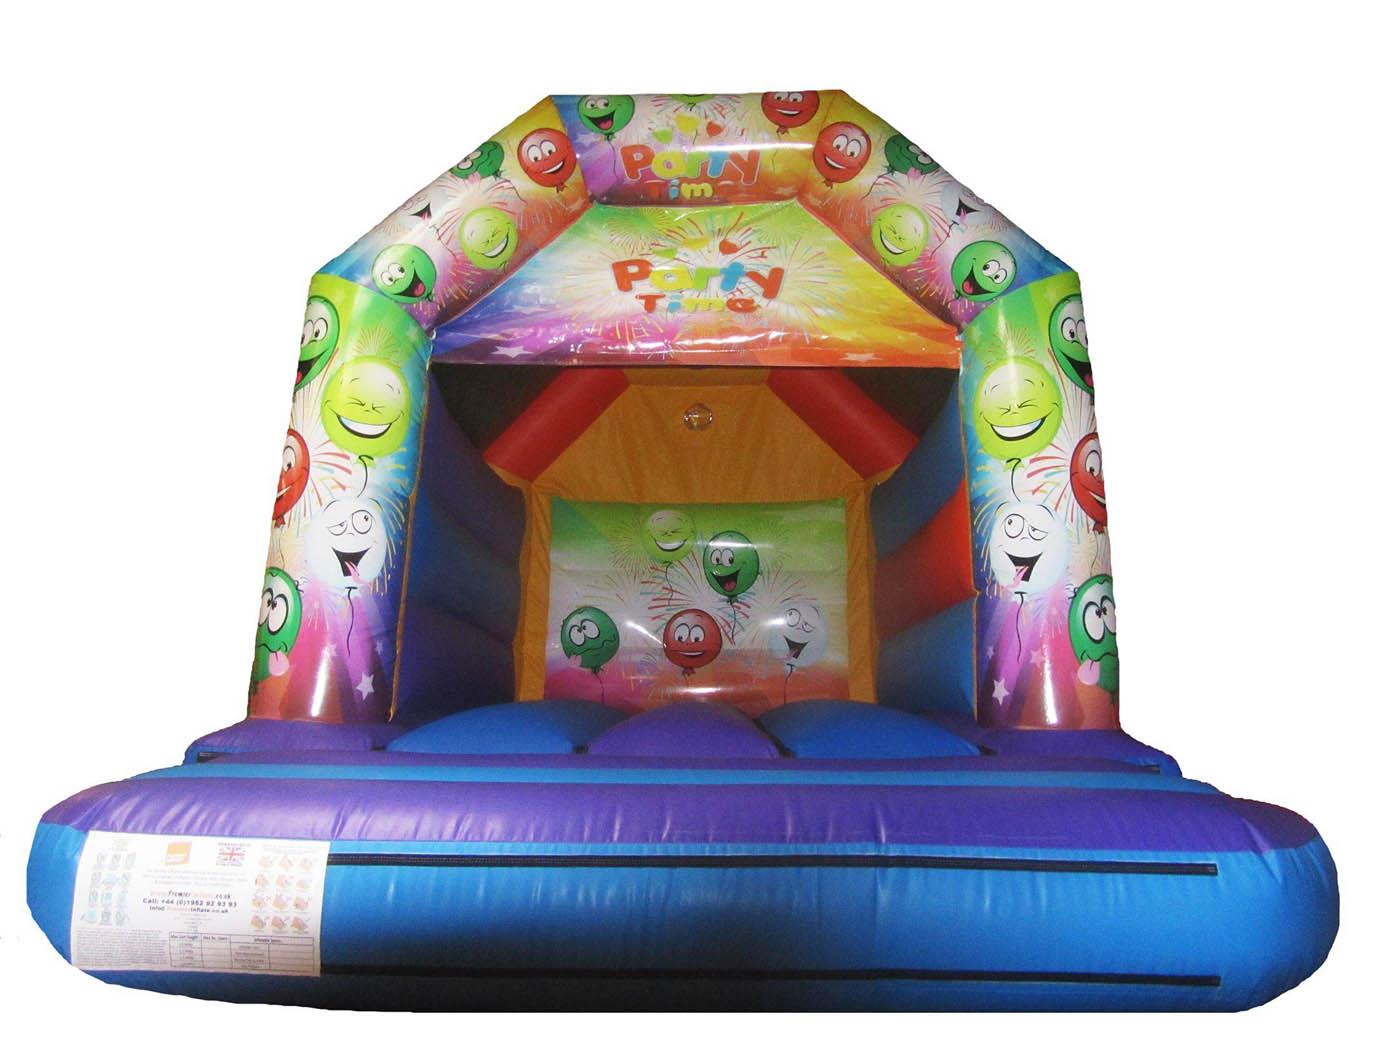 Party Themed Commercial Bouncy Castle for Sale